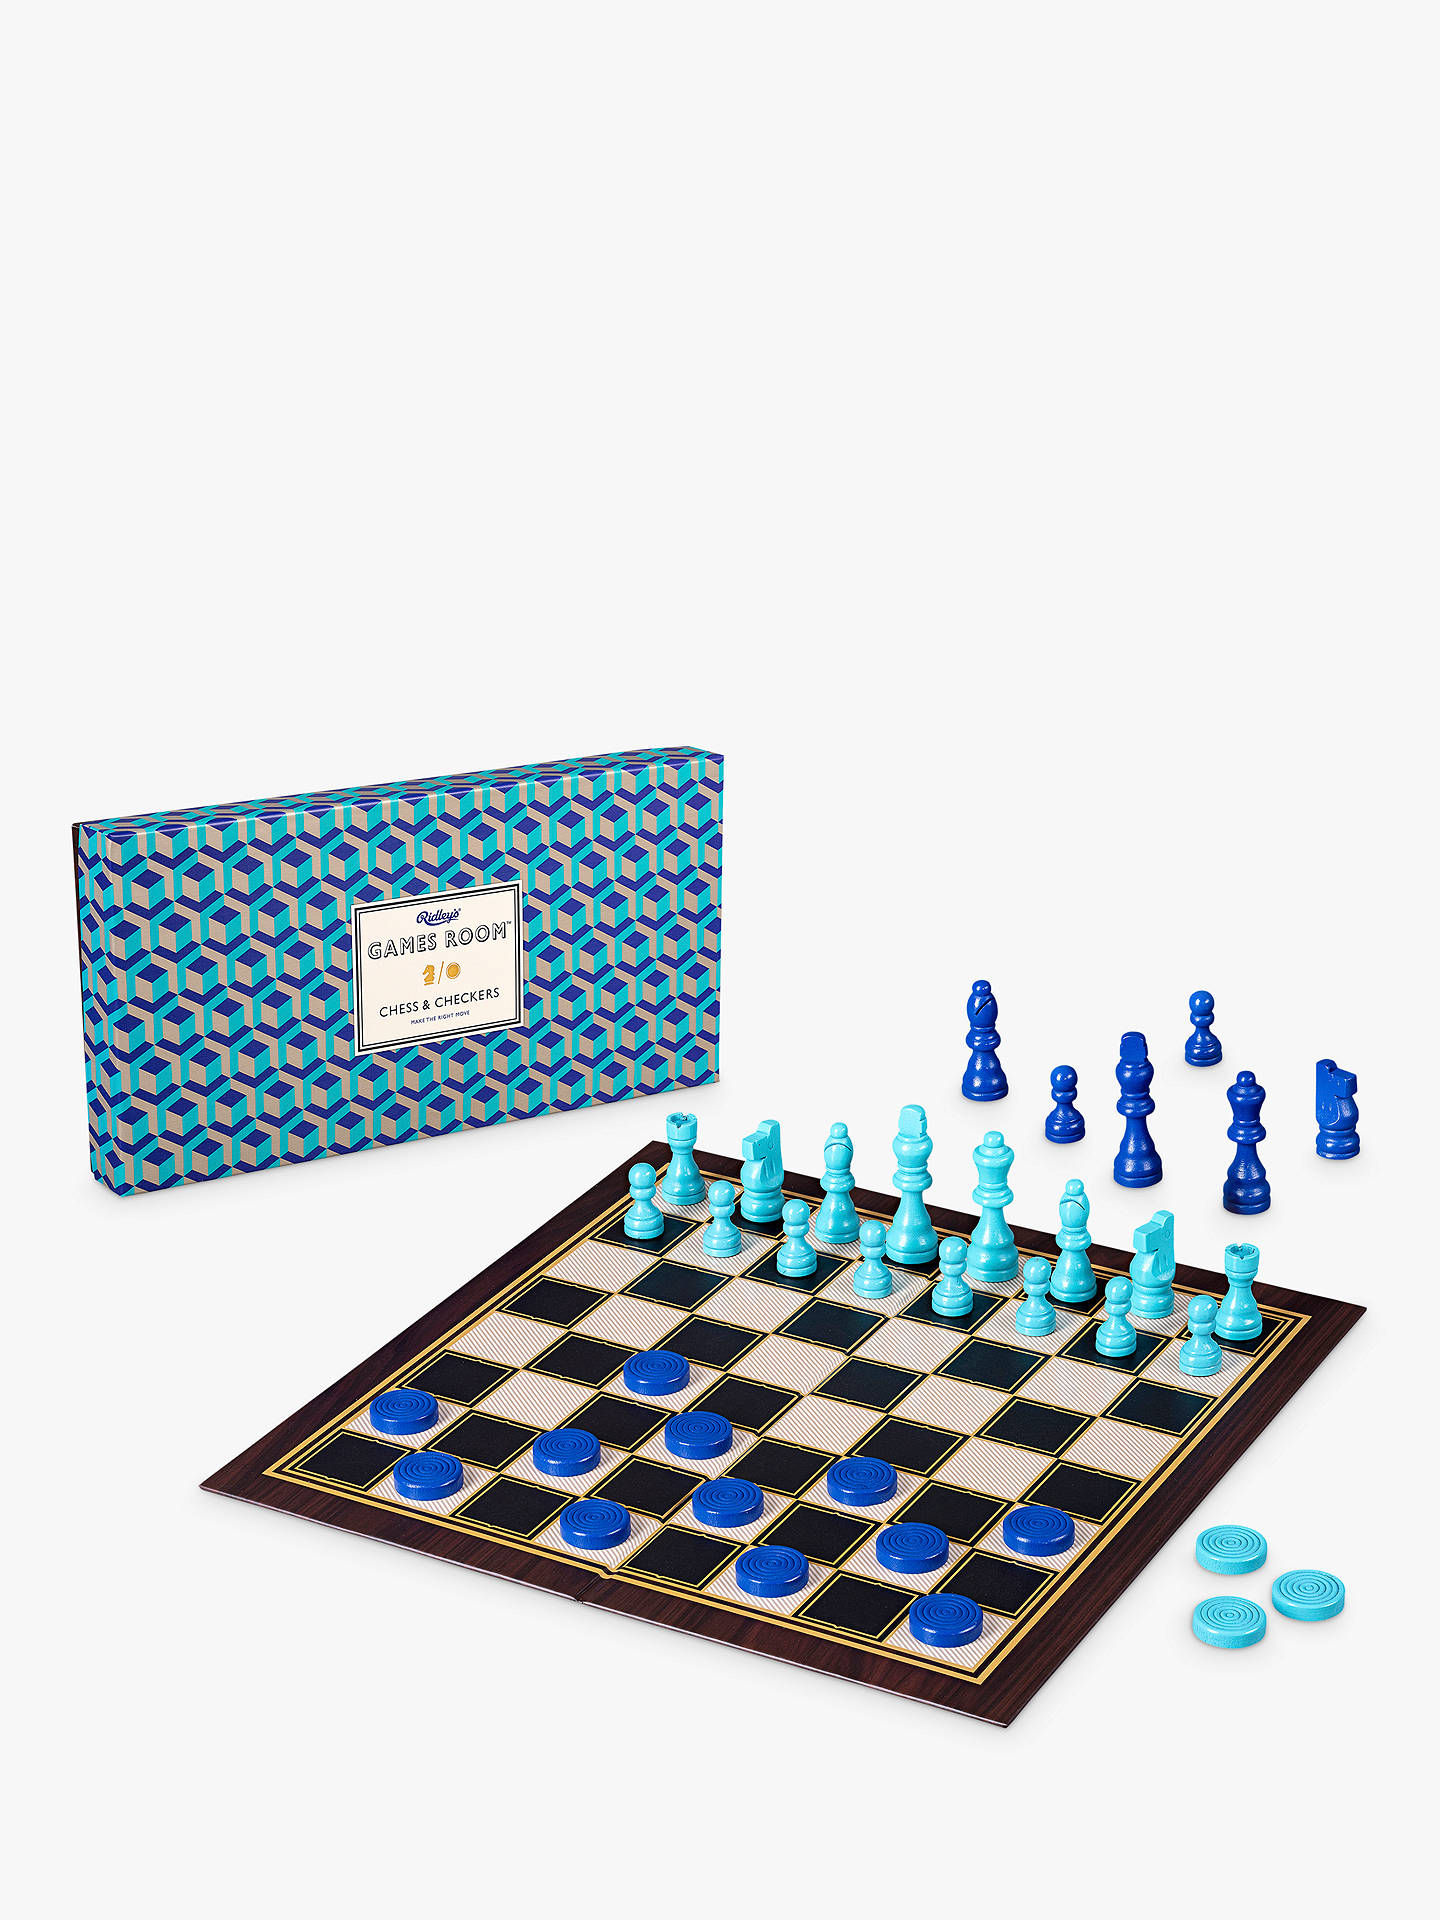 BuyRidley's Chess & Checkers Game Online at johnlewis.com